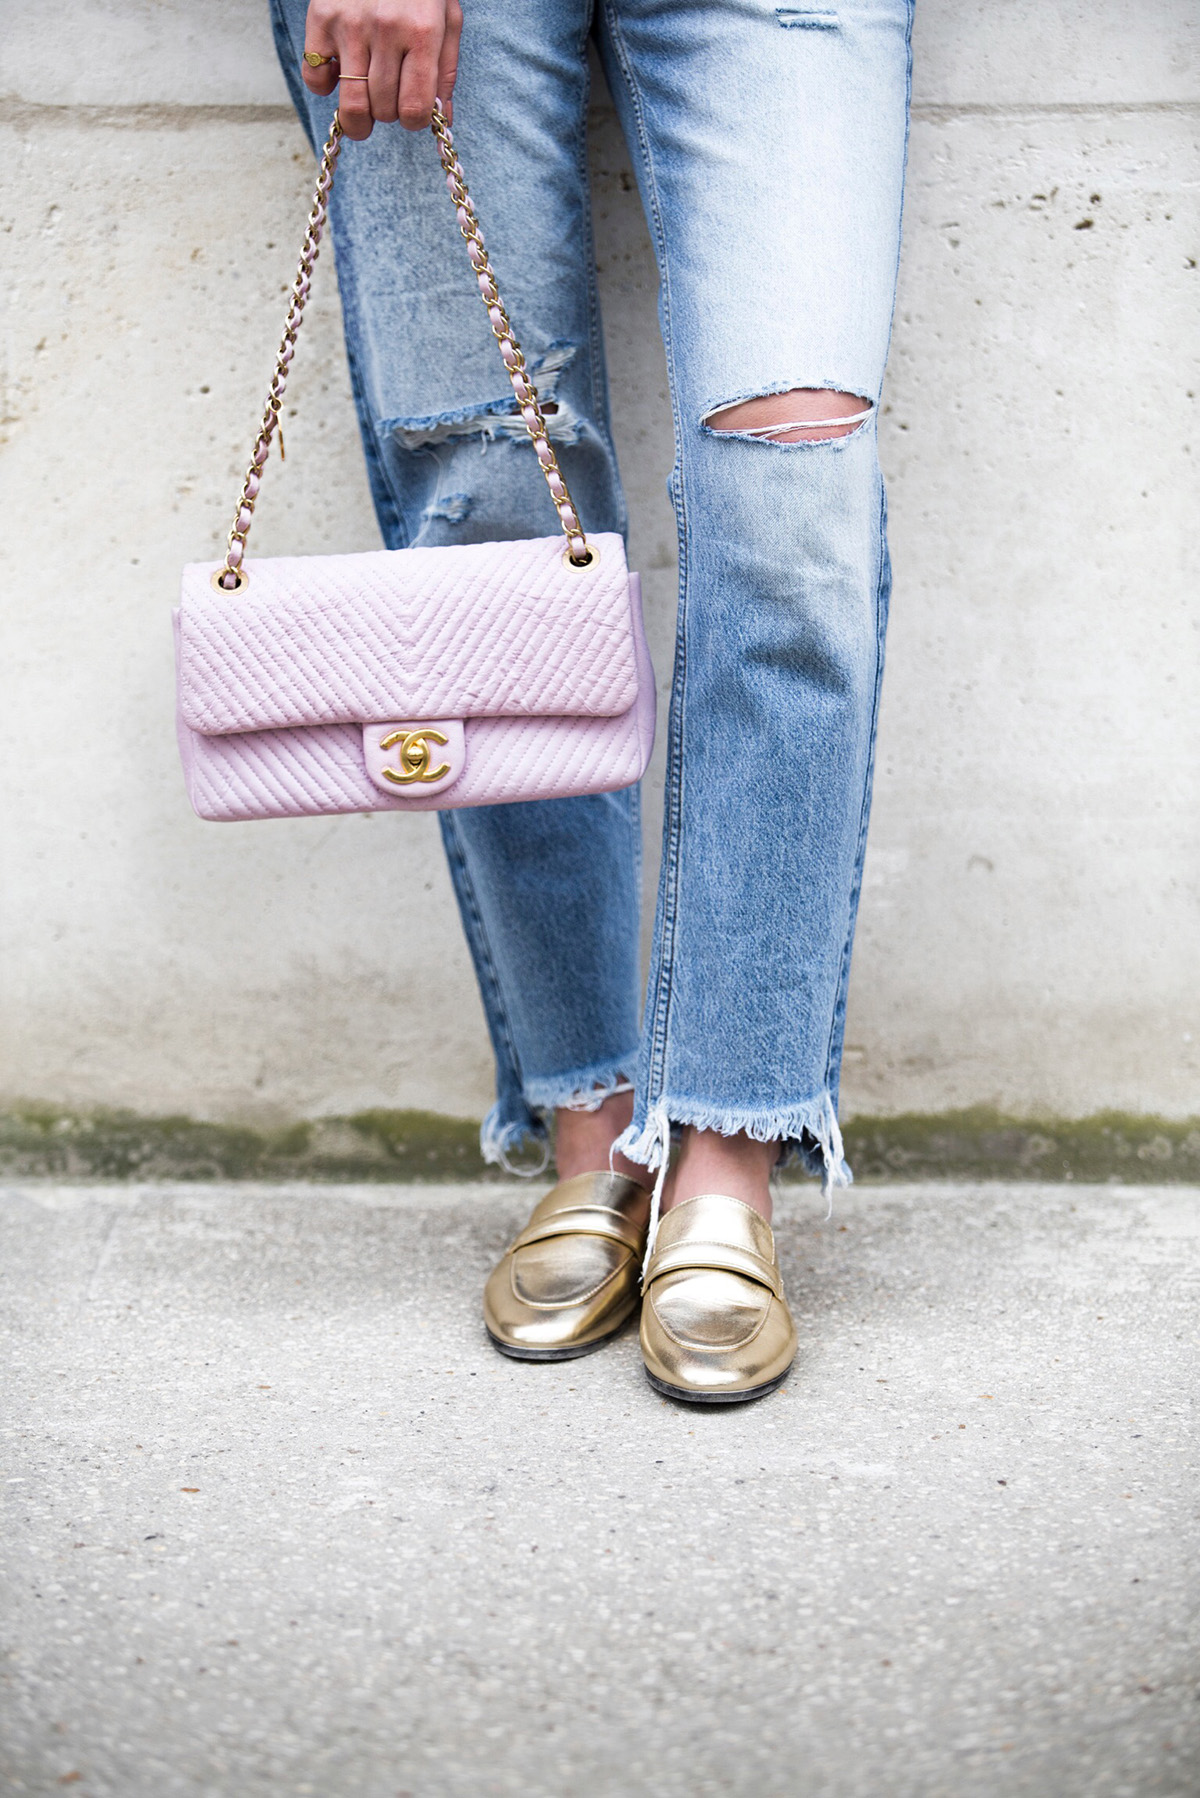 Pink Chanel Chevron Leather Bag and Gold Slippers